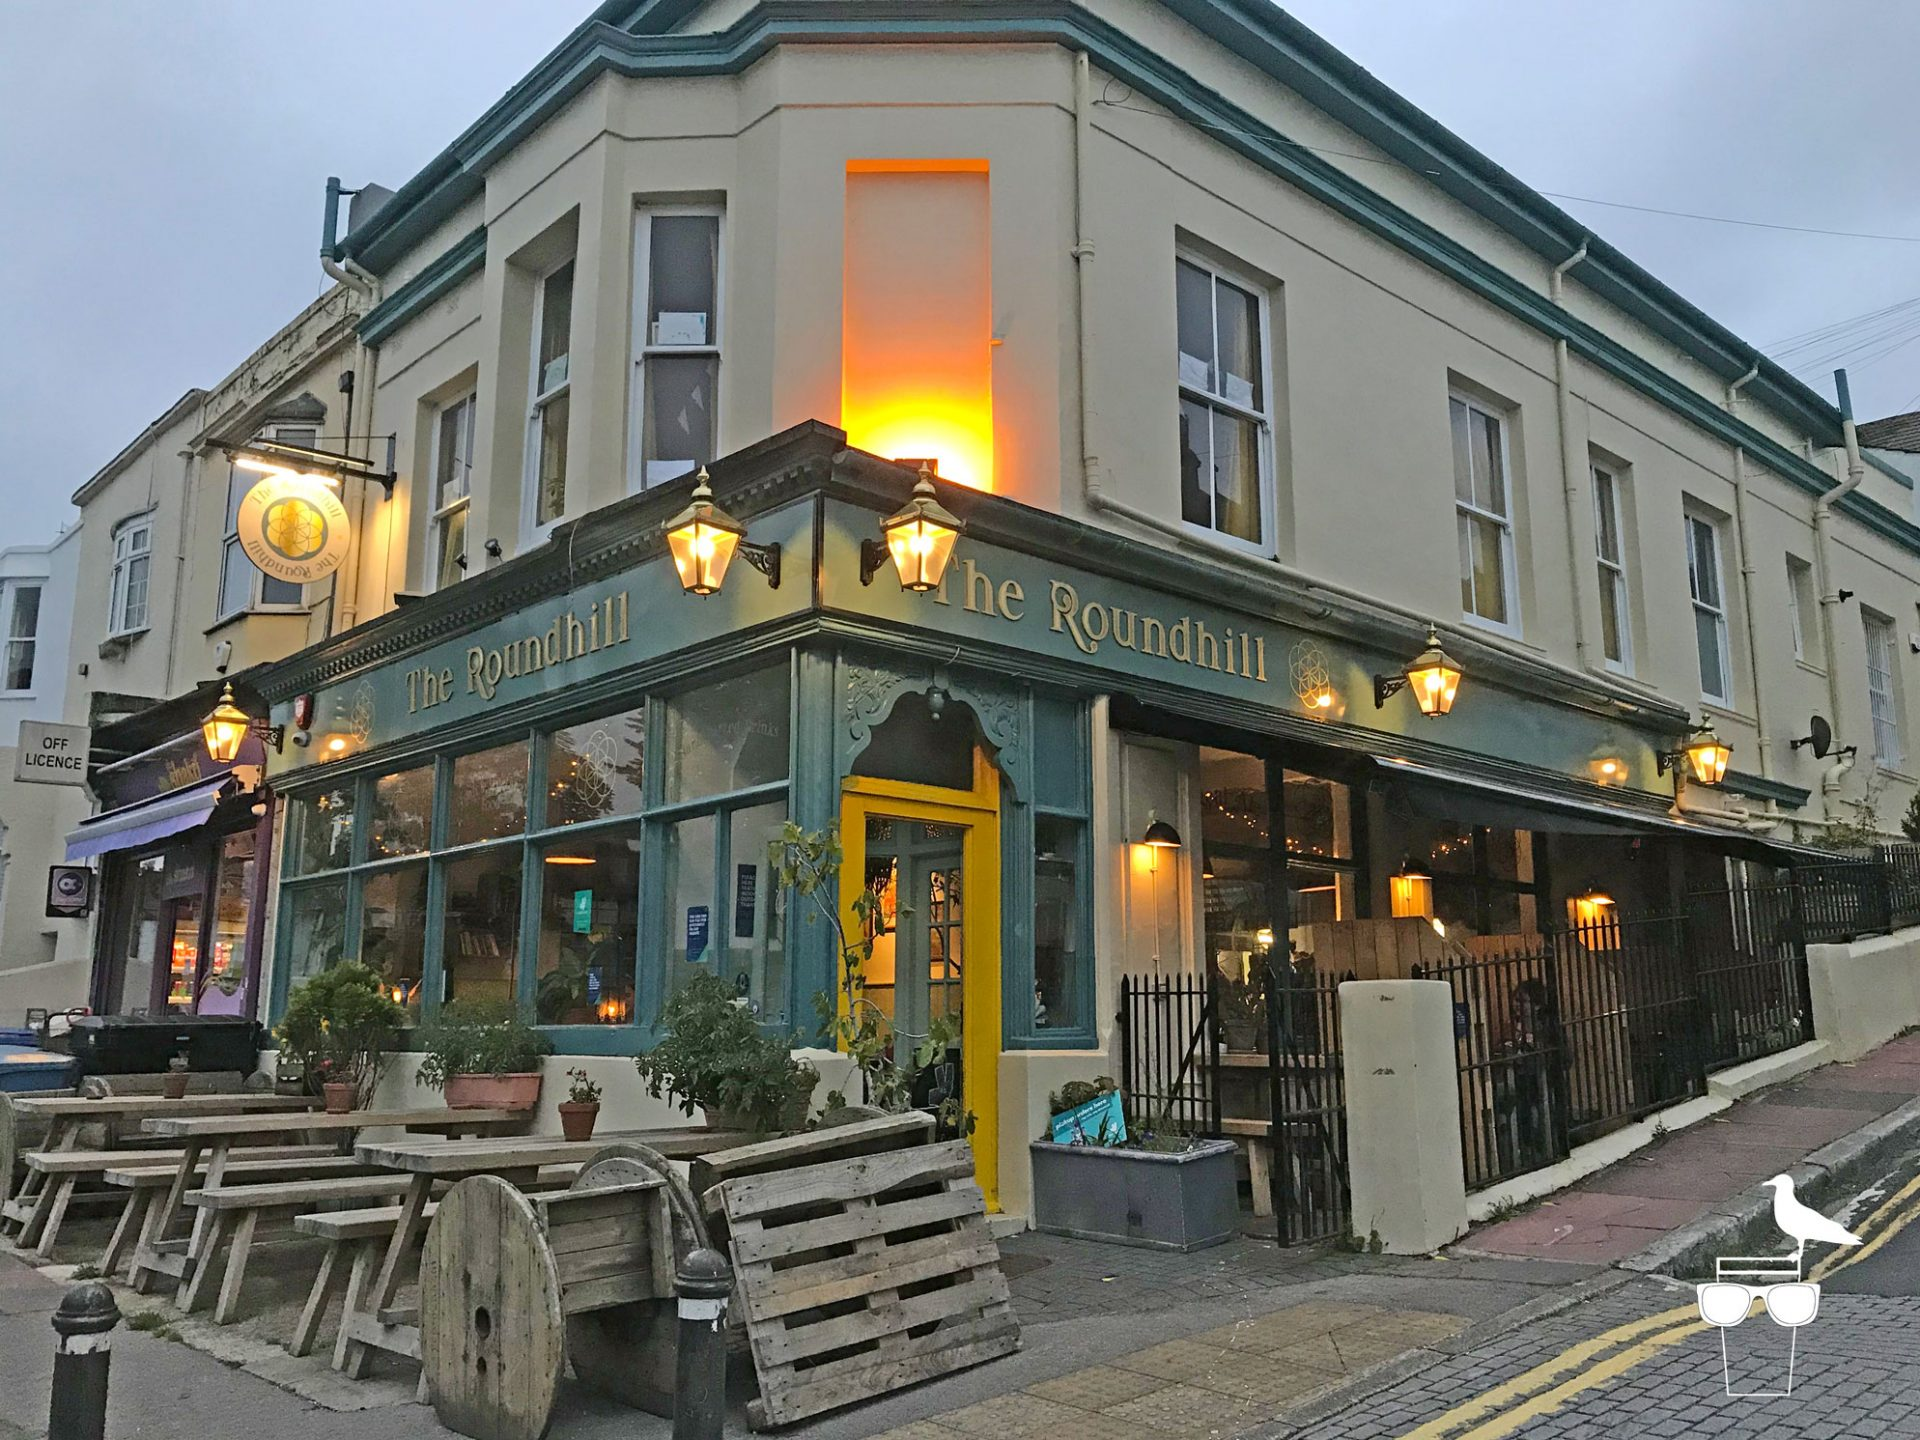 the-roundhill-pub-brighton-outside-view